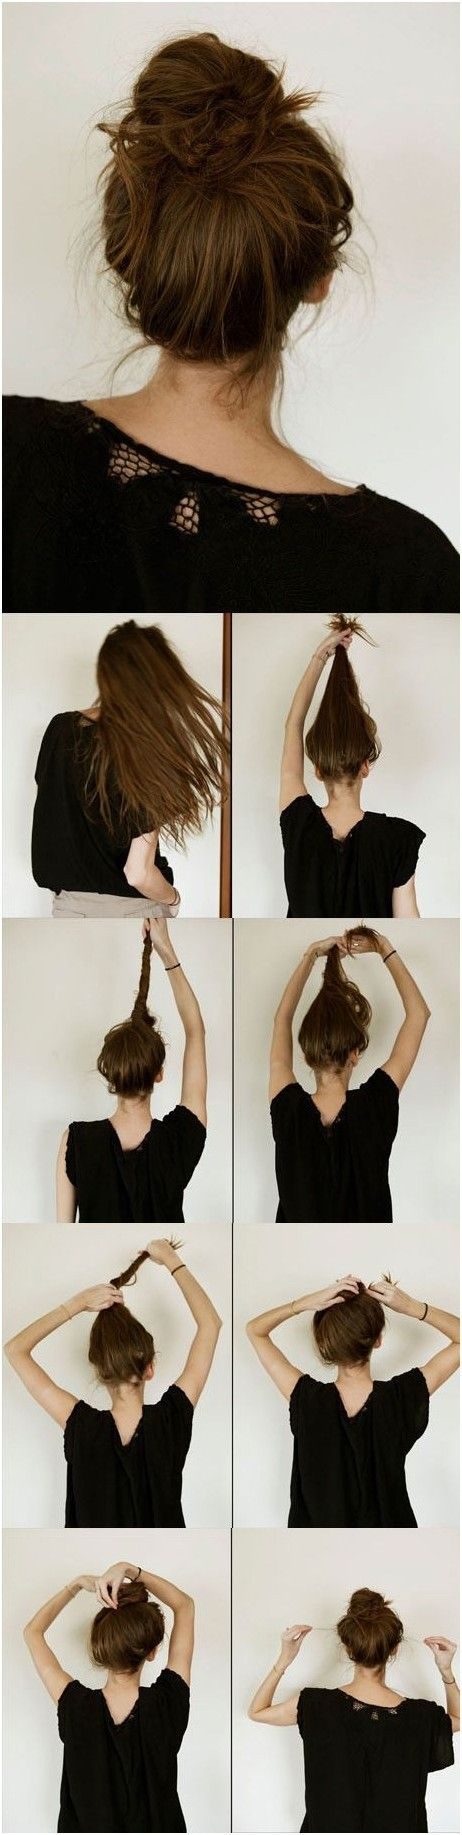 10 ways to make cute everyday hairstyles: long hair